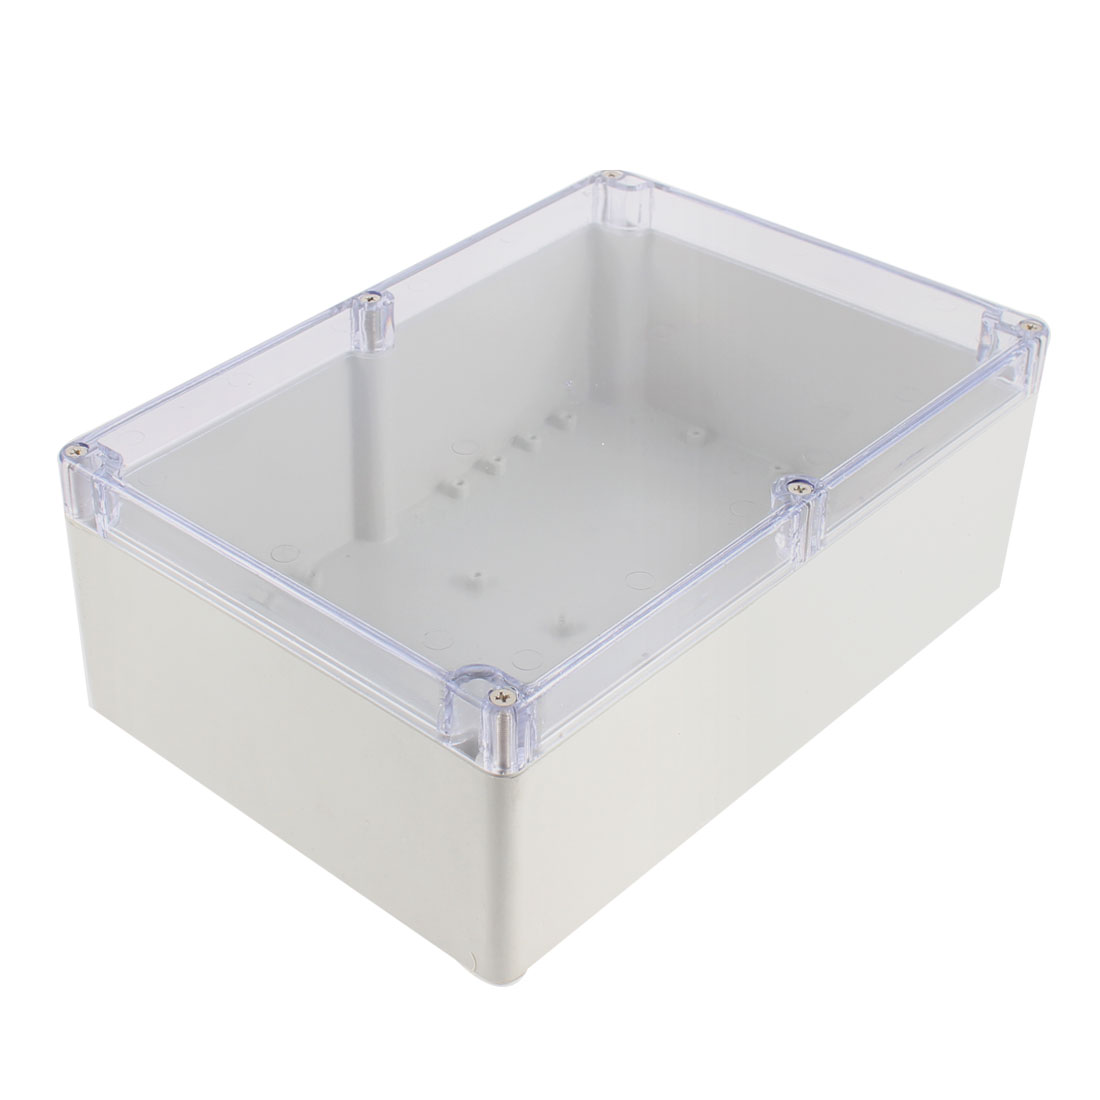 Clear Cover Plastic Electronic Project Junction Box Enclosure Case 262 x 182 x 95mm